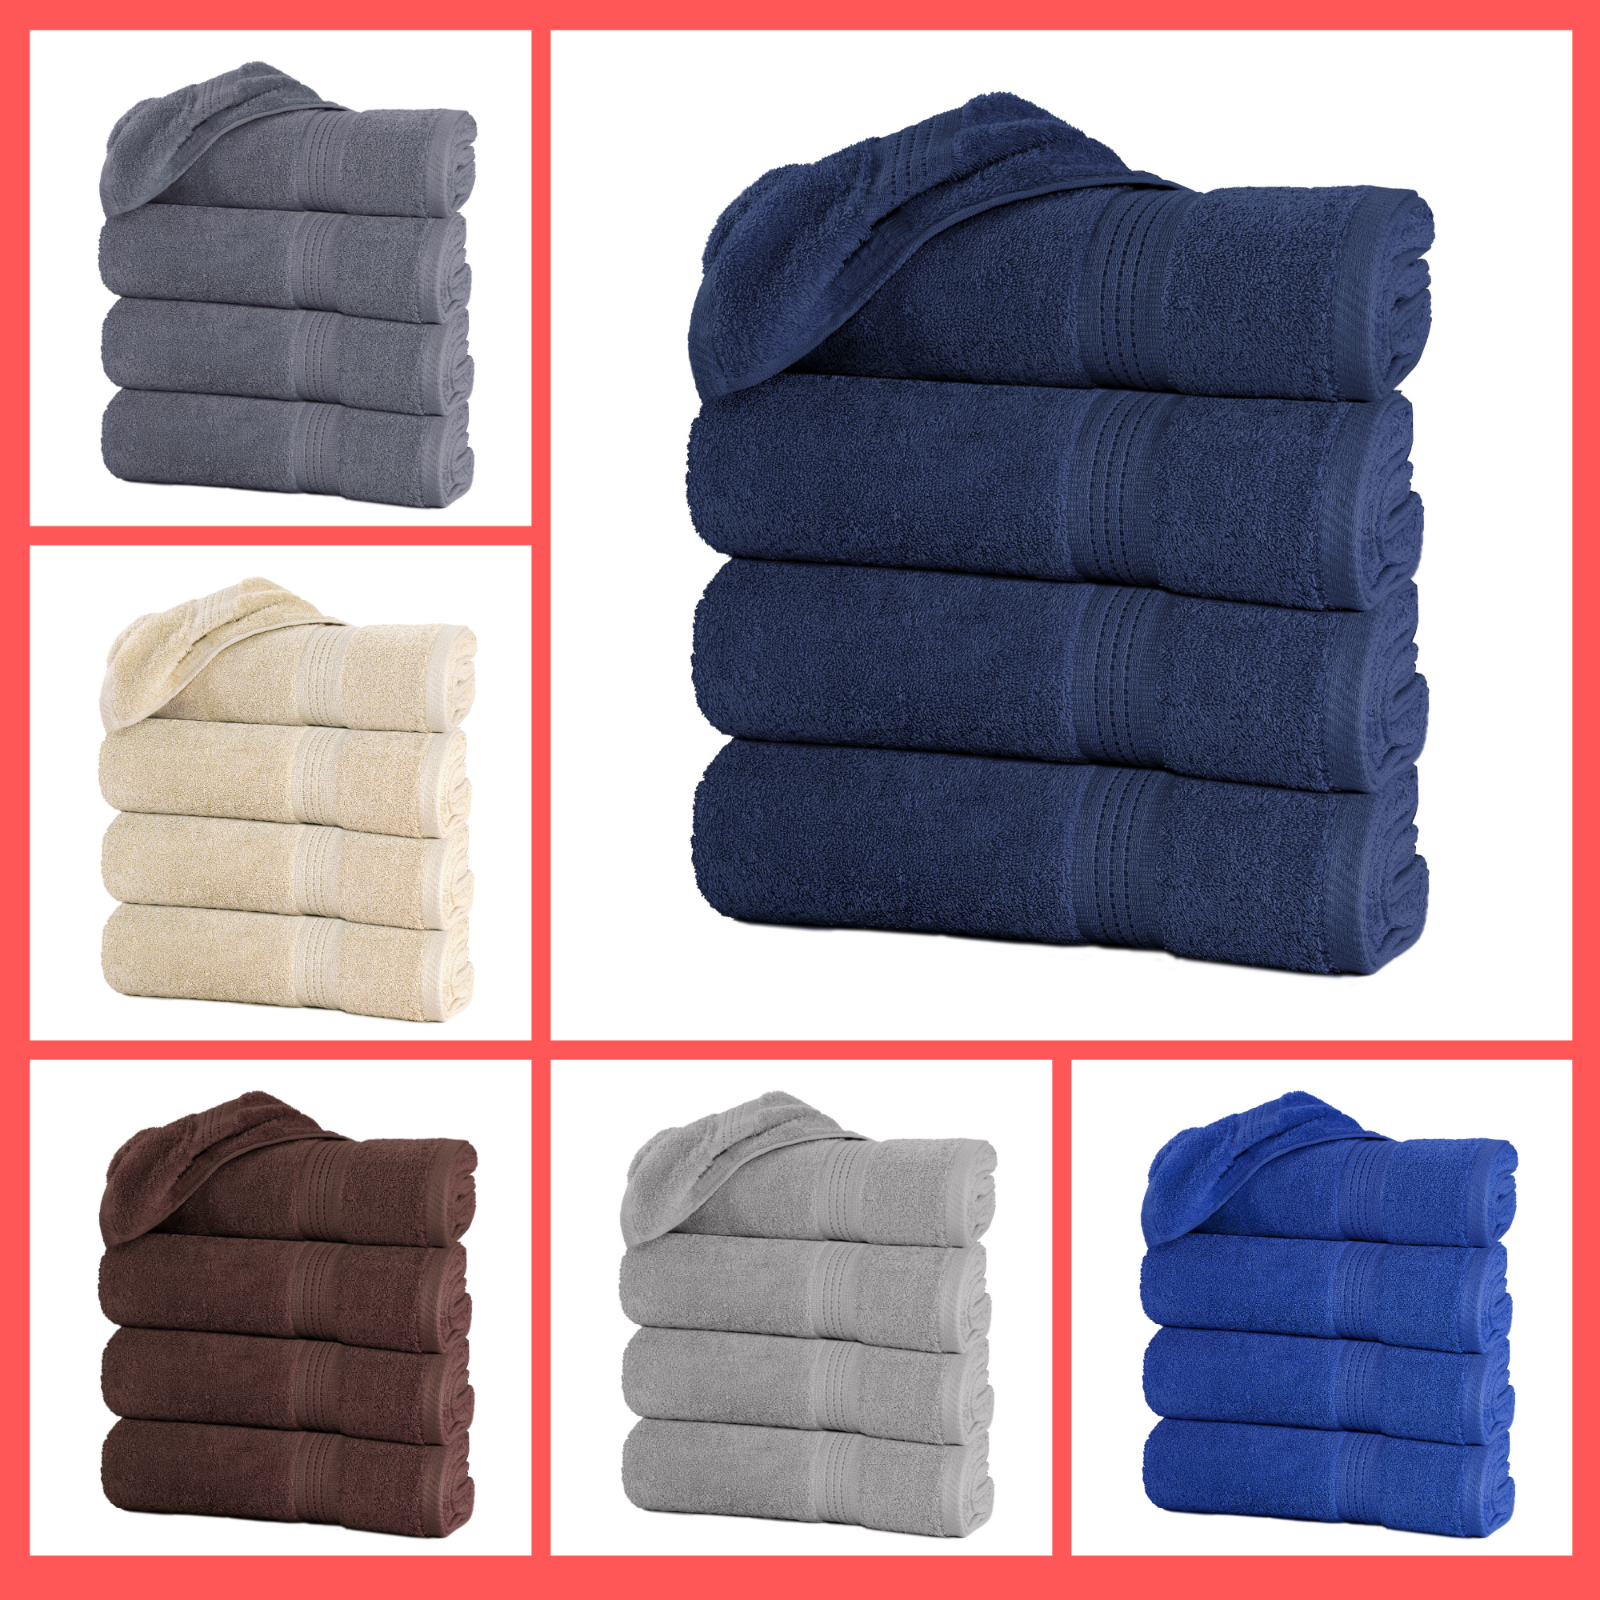 "Set of 4 Large Bath Towel Sheets 100% Cotton 27""x55"" 500 GSM"